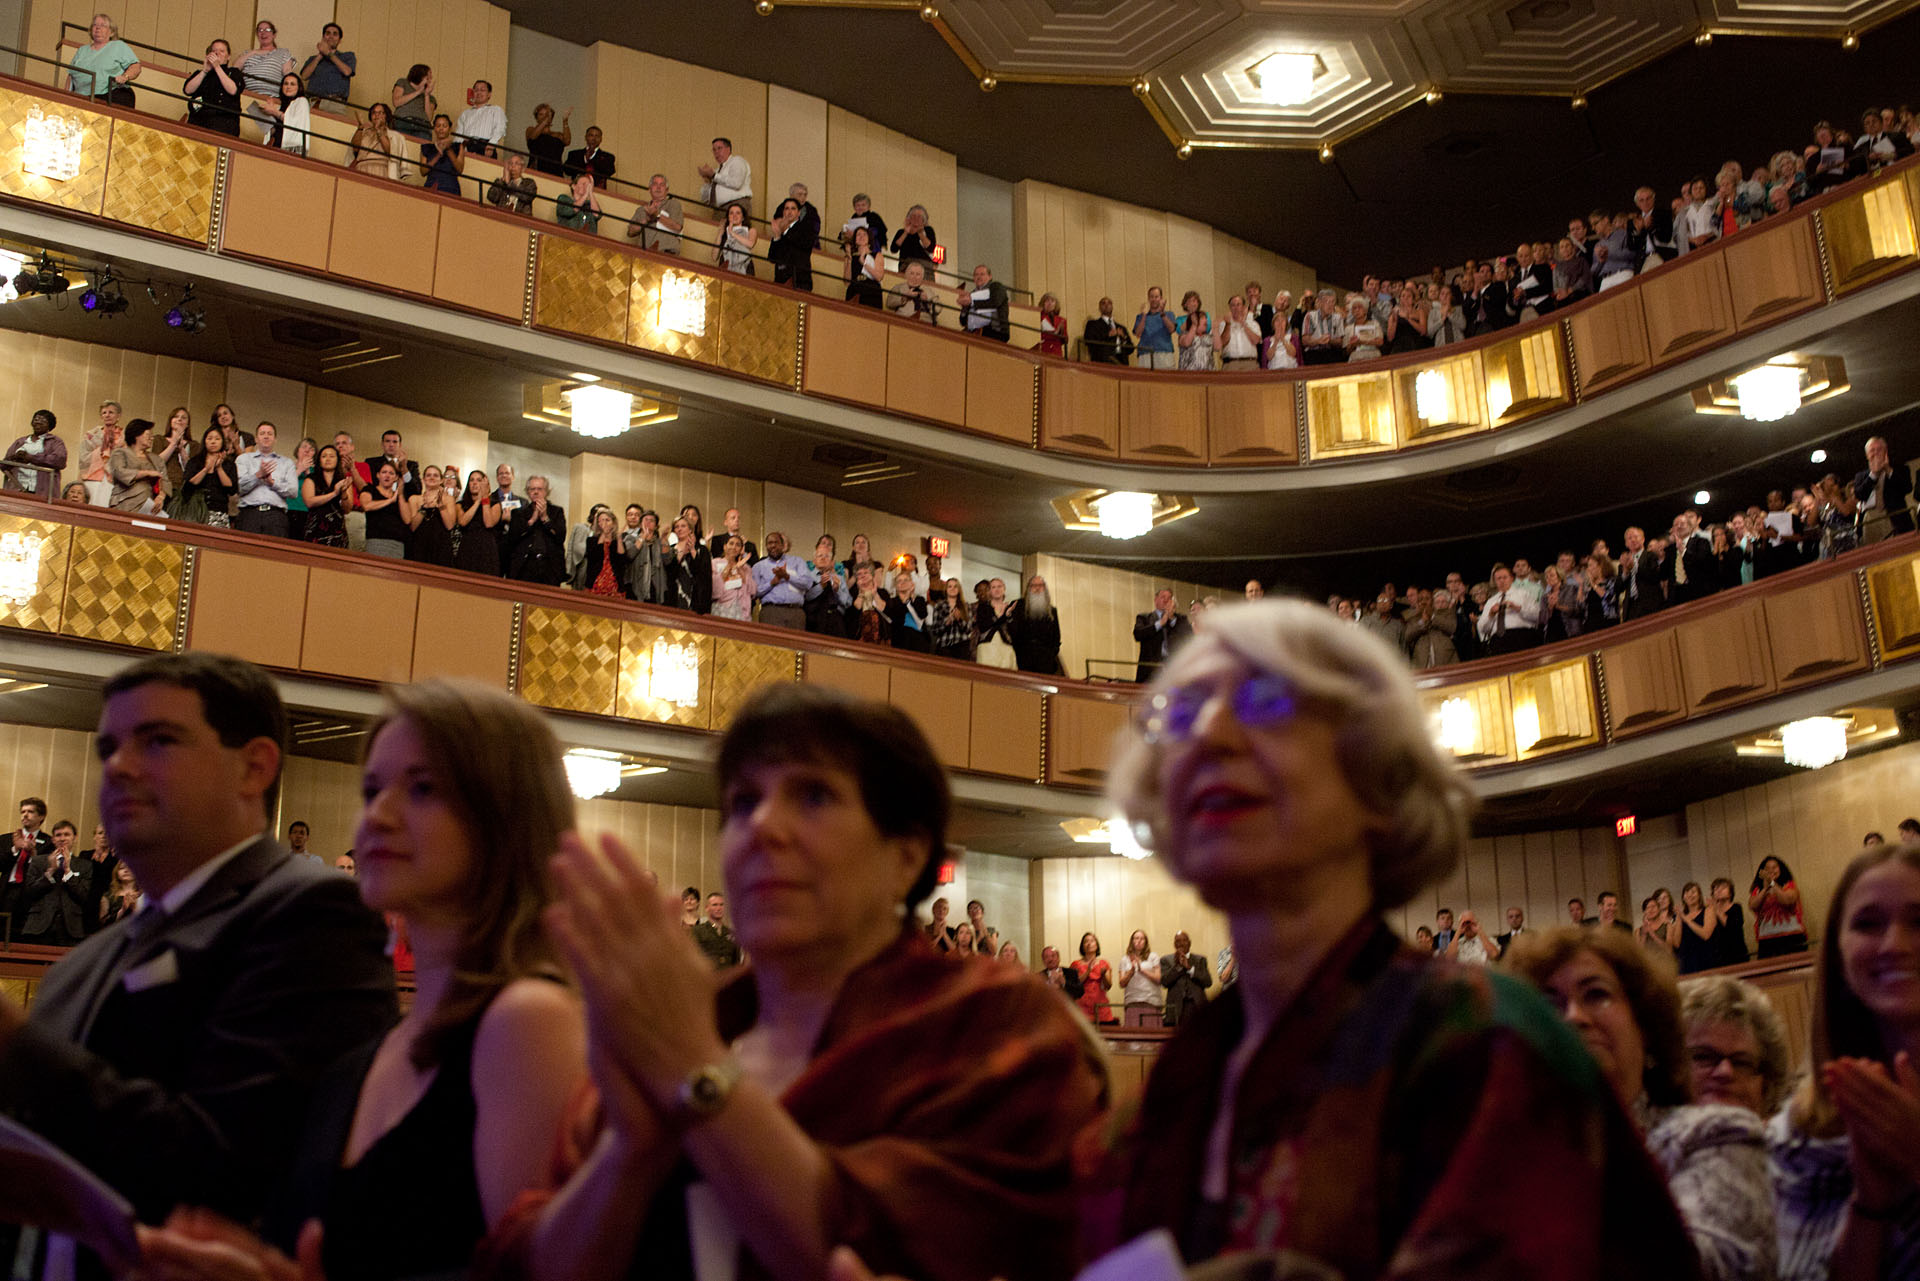 Members of the audience applaud during the Concert for Hope